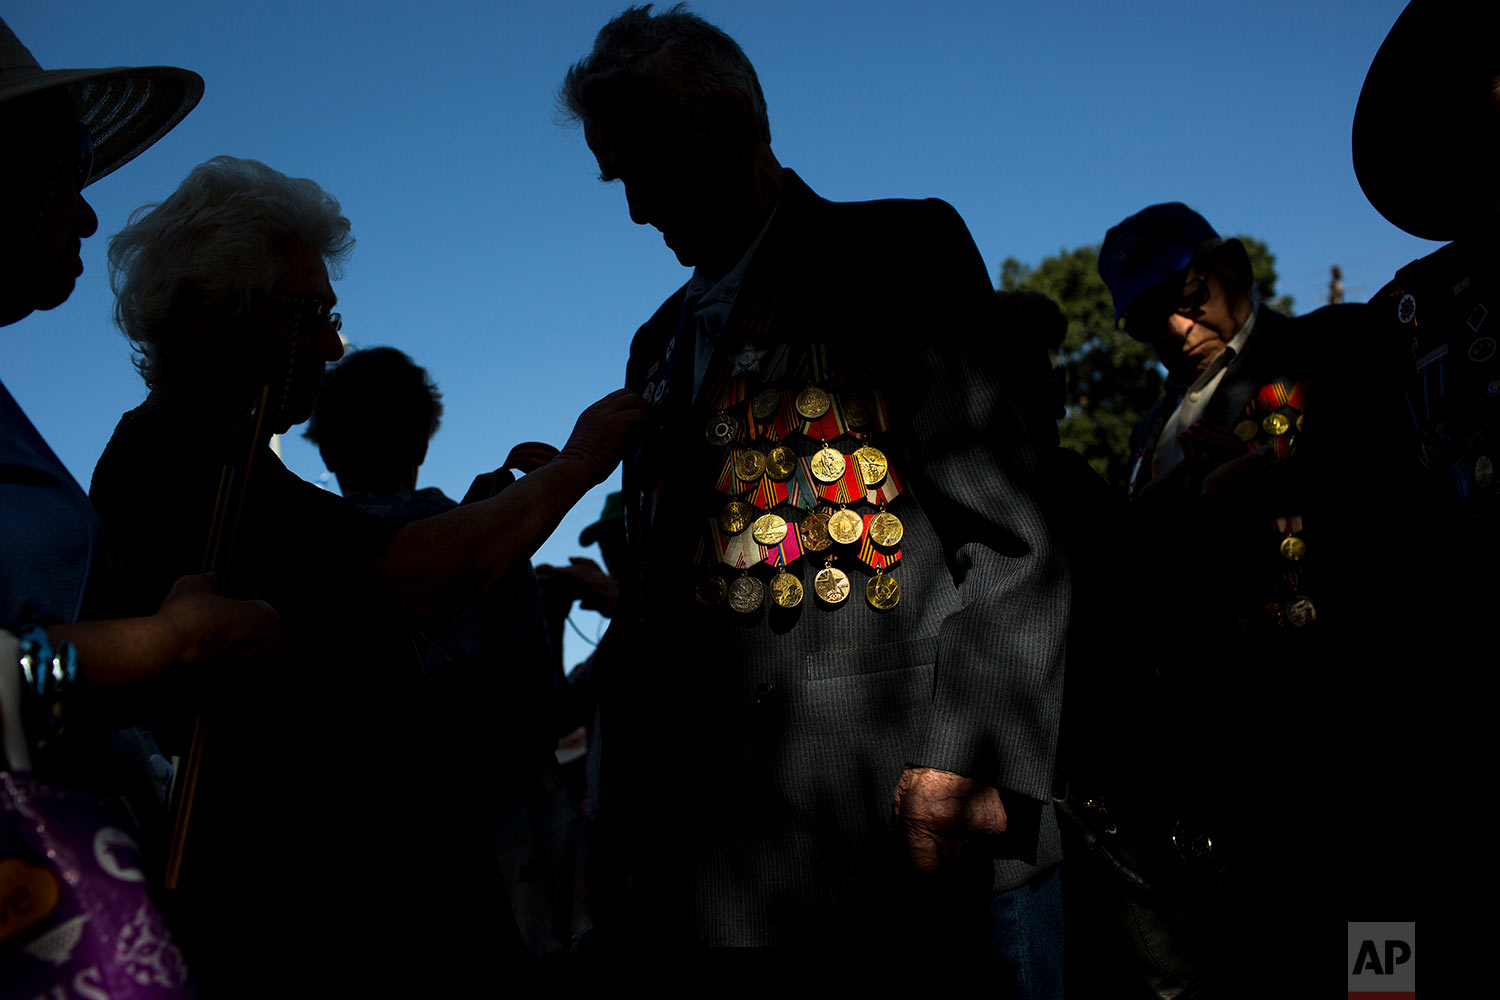 Russian-Israeli World War II veterans gather for  a street parade marking Victory Day, in Ashdod, Israel, Monday, May 8, 2017. Israeli World War II veterans from the former Soviet Union marched together with their families across the country Monday to celebrate the 72nd anniversary of the allied victory over Nazi Germany in 1945. (AP Photo/Oded Balilty)